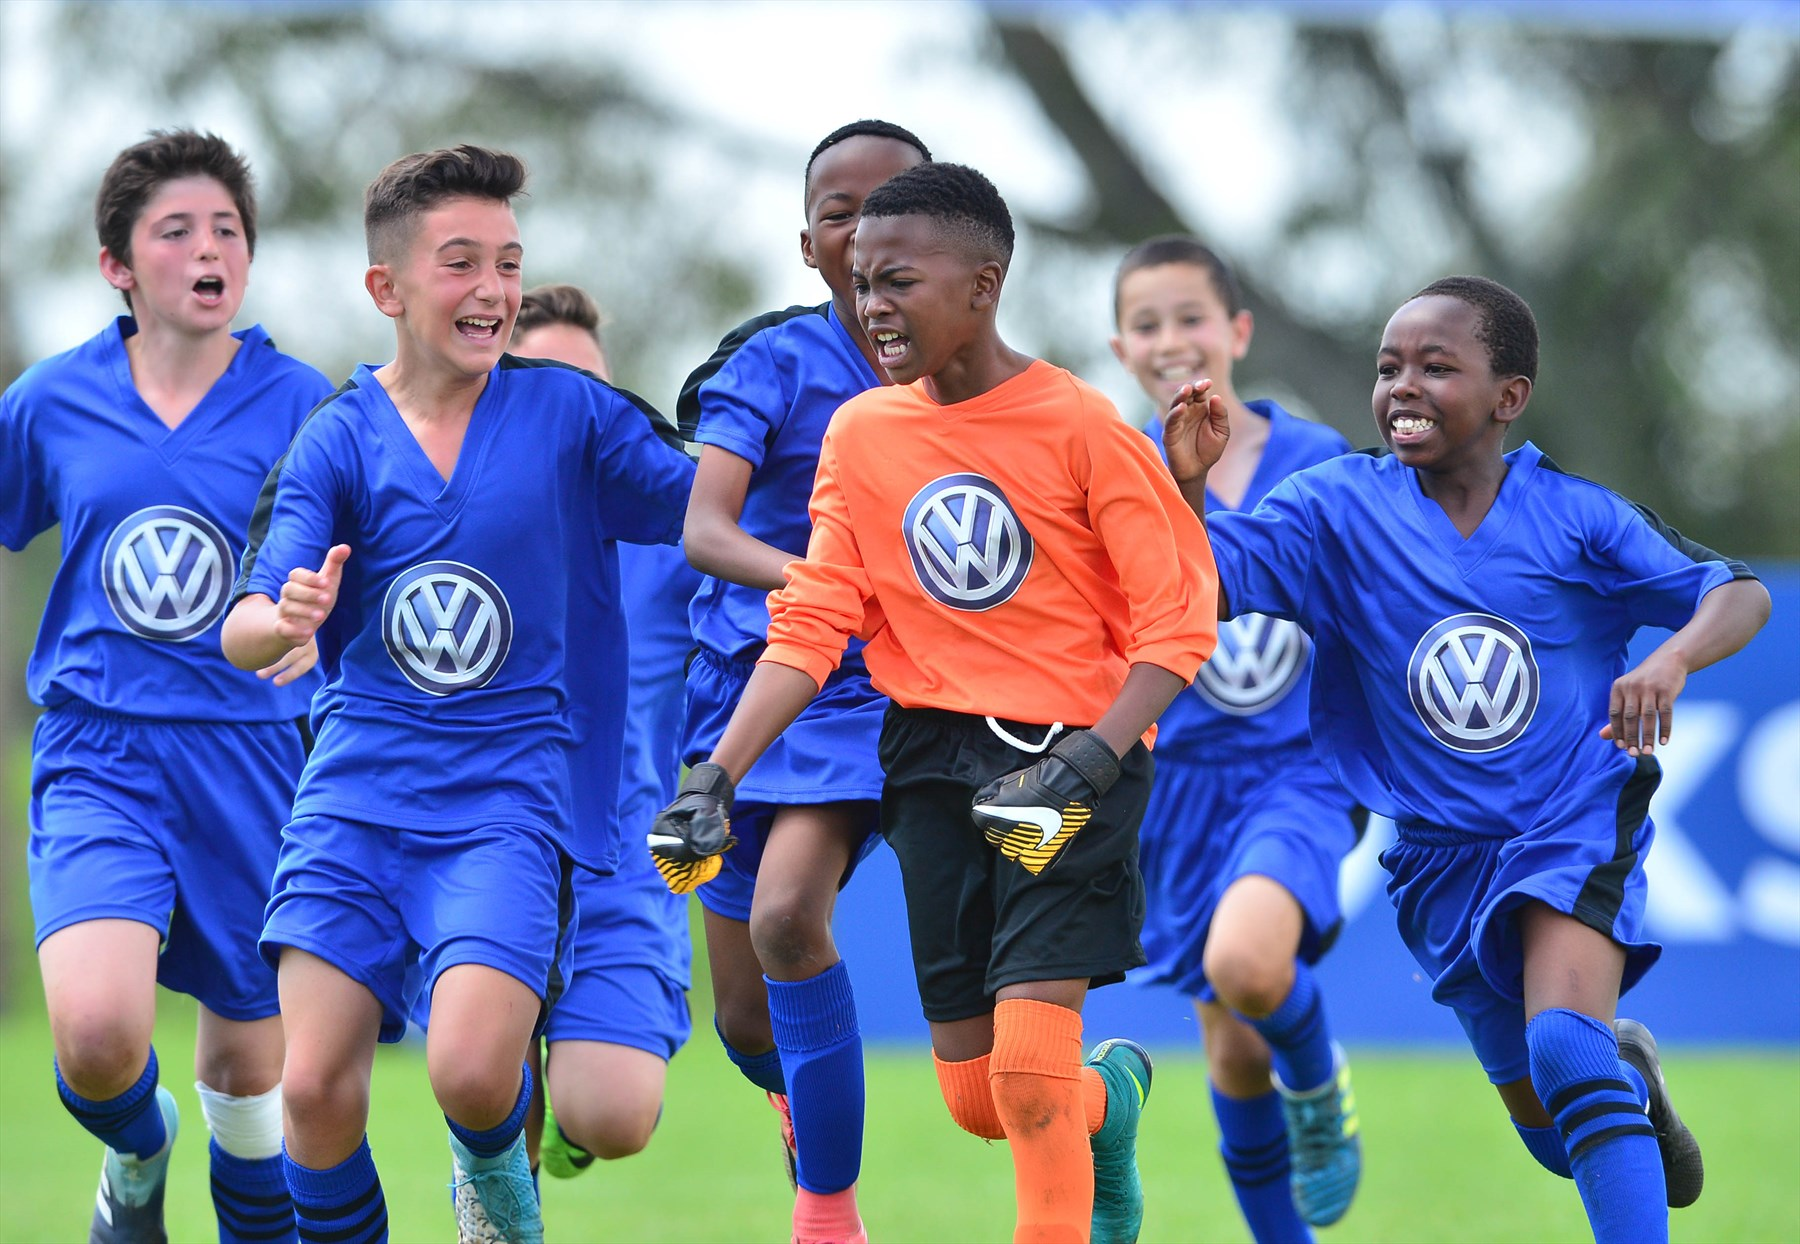 All to play for at this year's Volkswagen Junior Masters Soccer Tournament